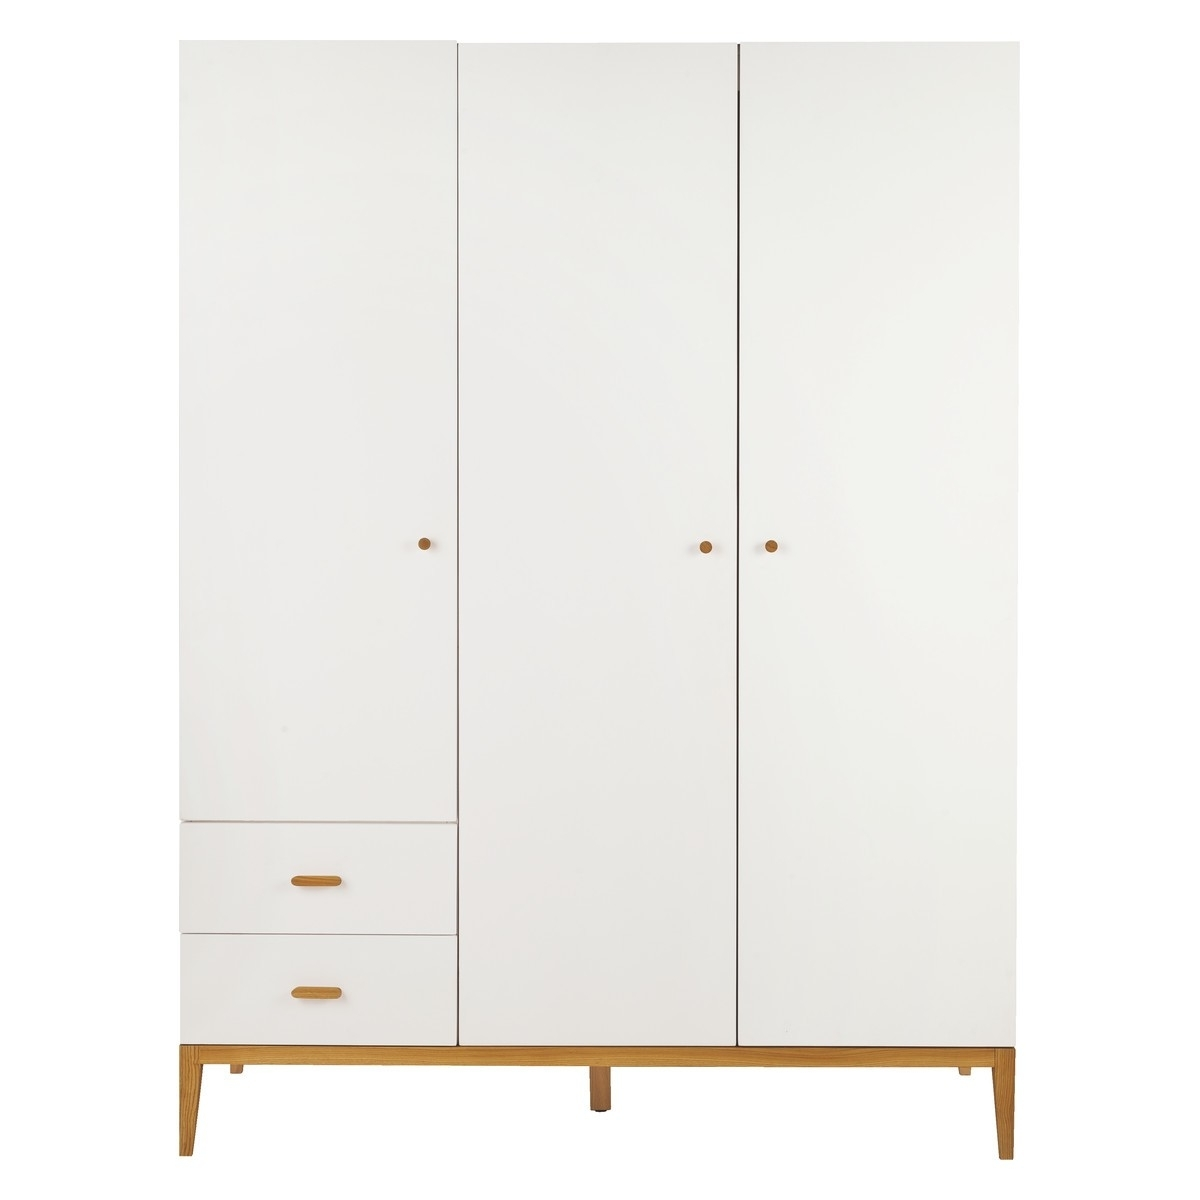 Buy Now At Habitat Uk In Two Door White Wardrobes (View 12 of 15)